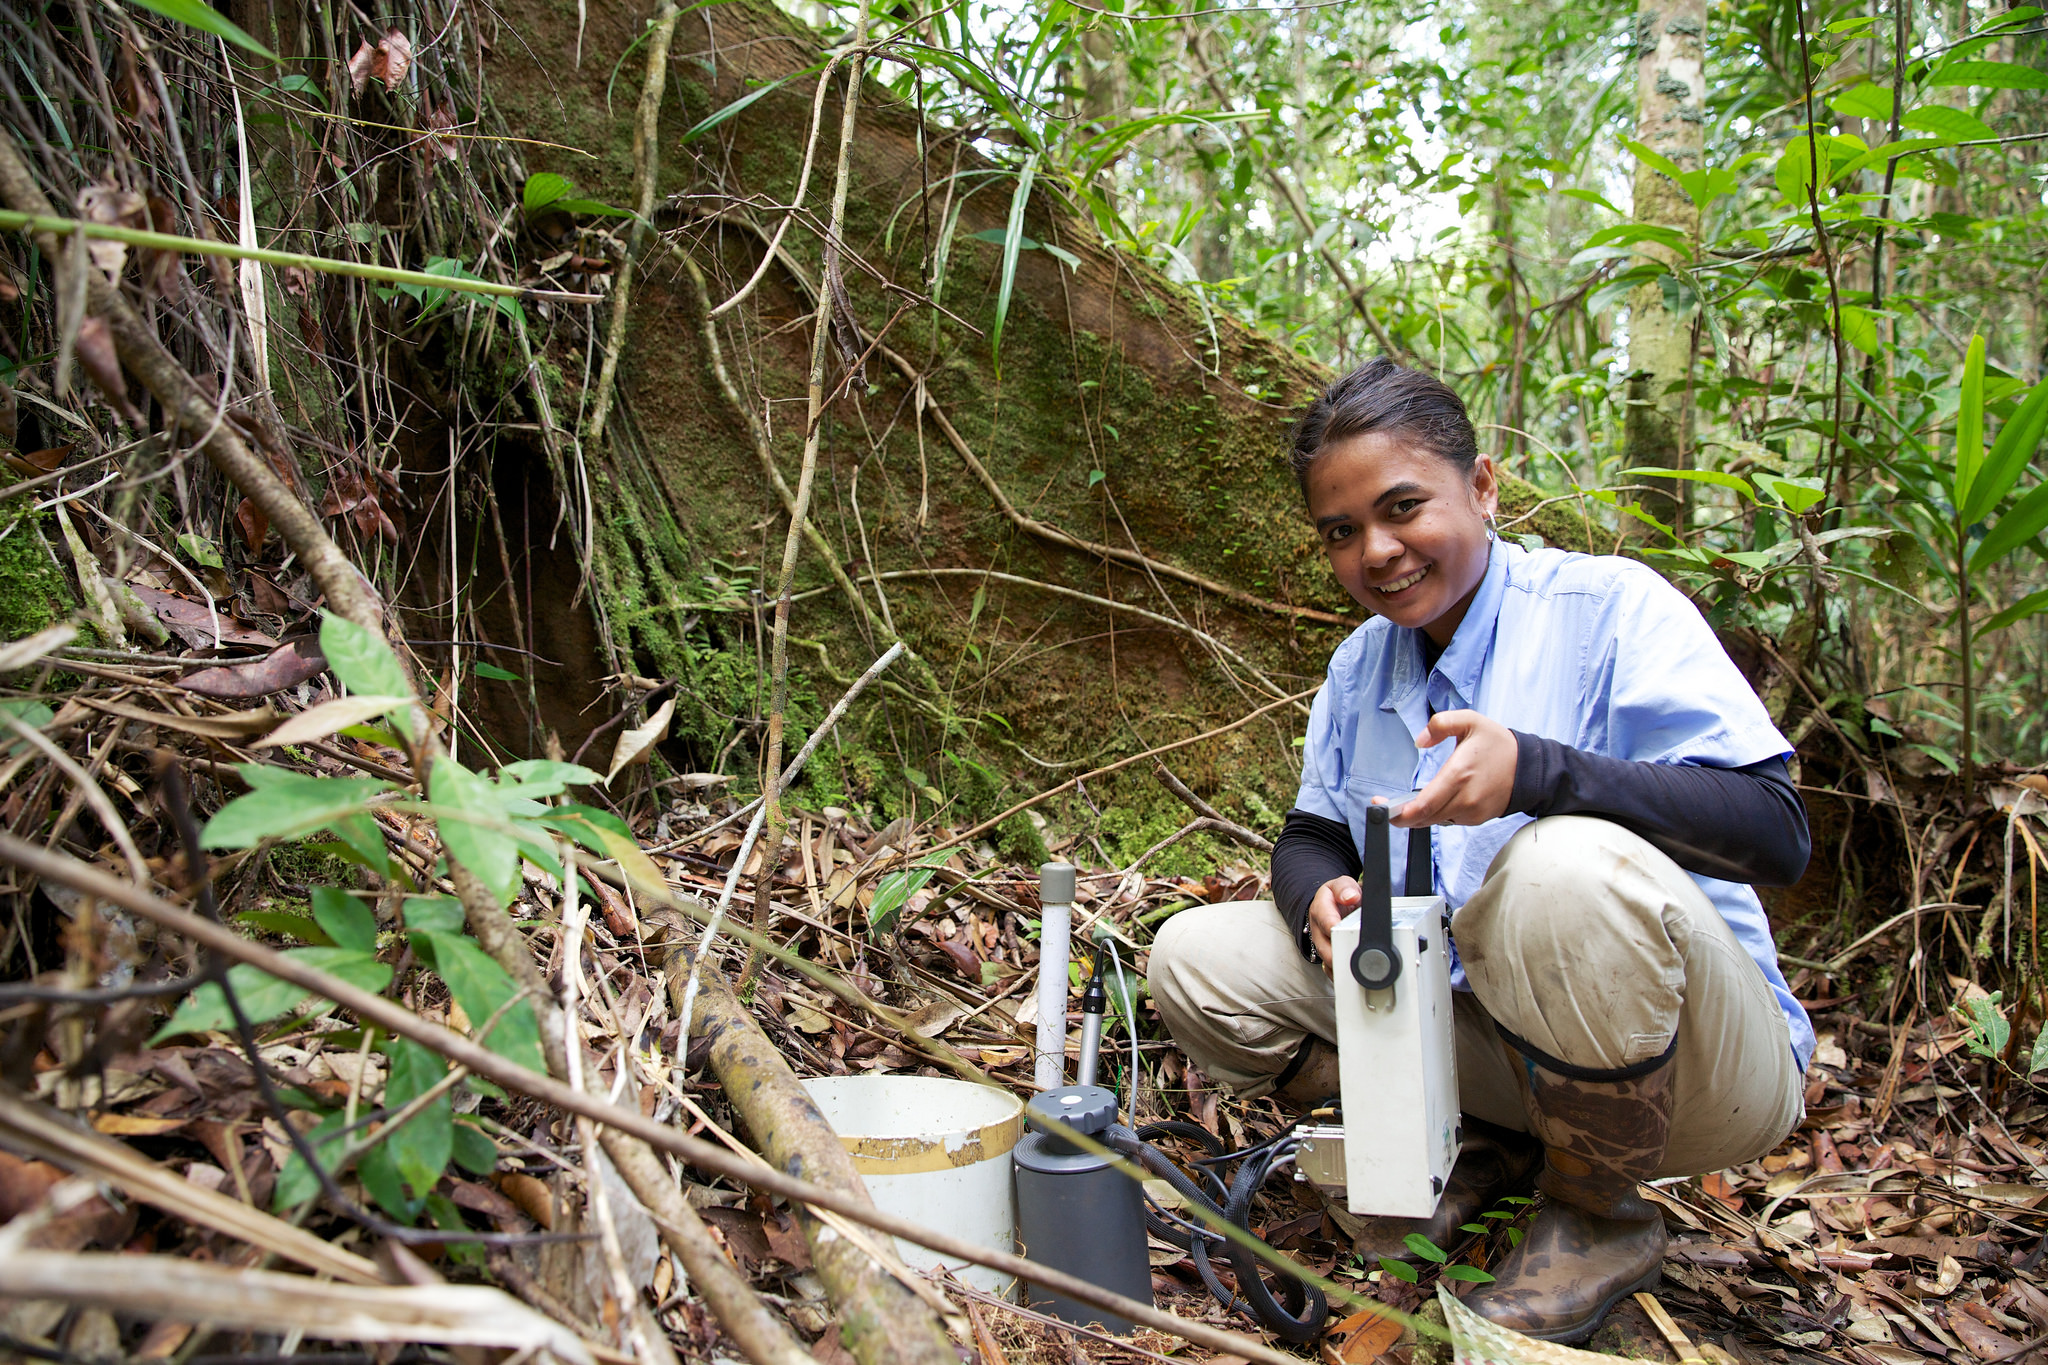 A Center for International Forestry Research (CIFOR) researcher collecting data about the amount of carbon dioxide. Photo by Nanang Sujana for Center for International Forestry Research (CIFOR).